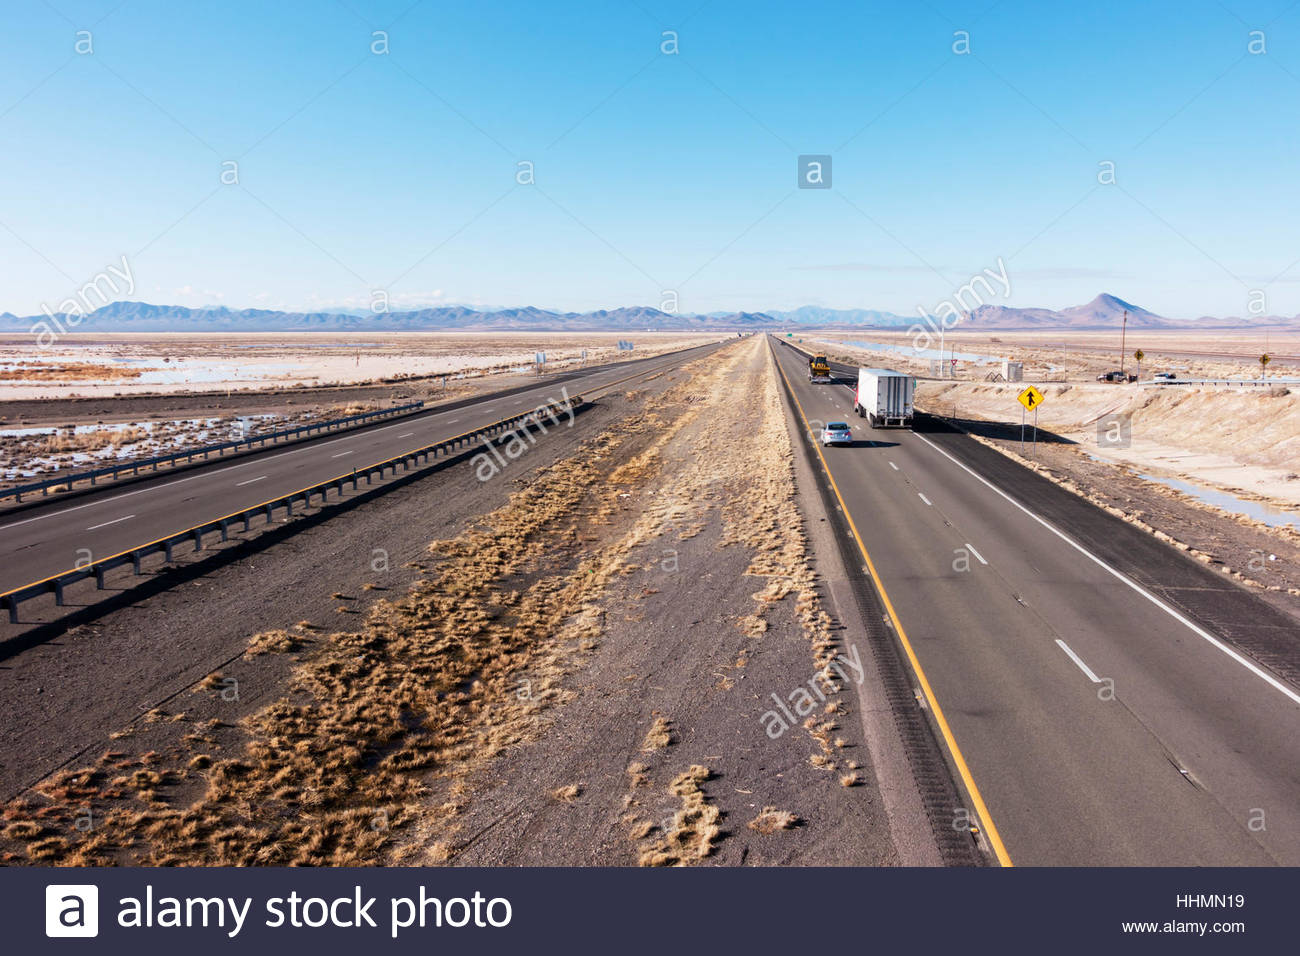 Interstate 10 in southwestern 'New Mexico' looking west 2 people barely visible - Stock Image